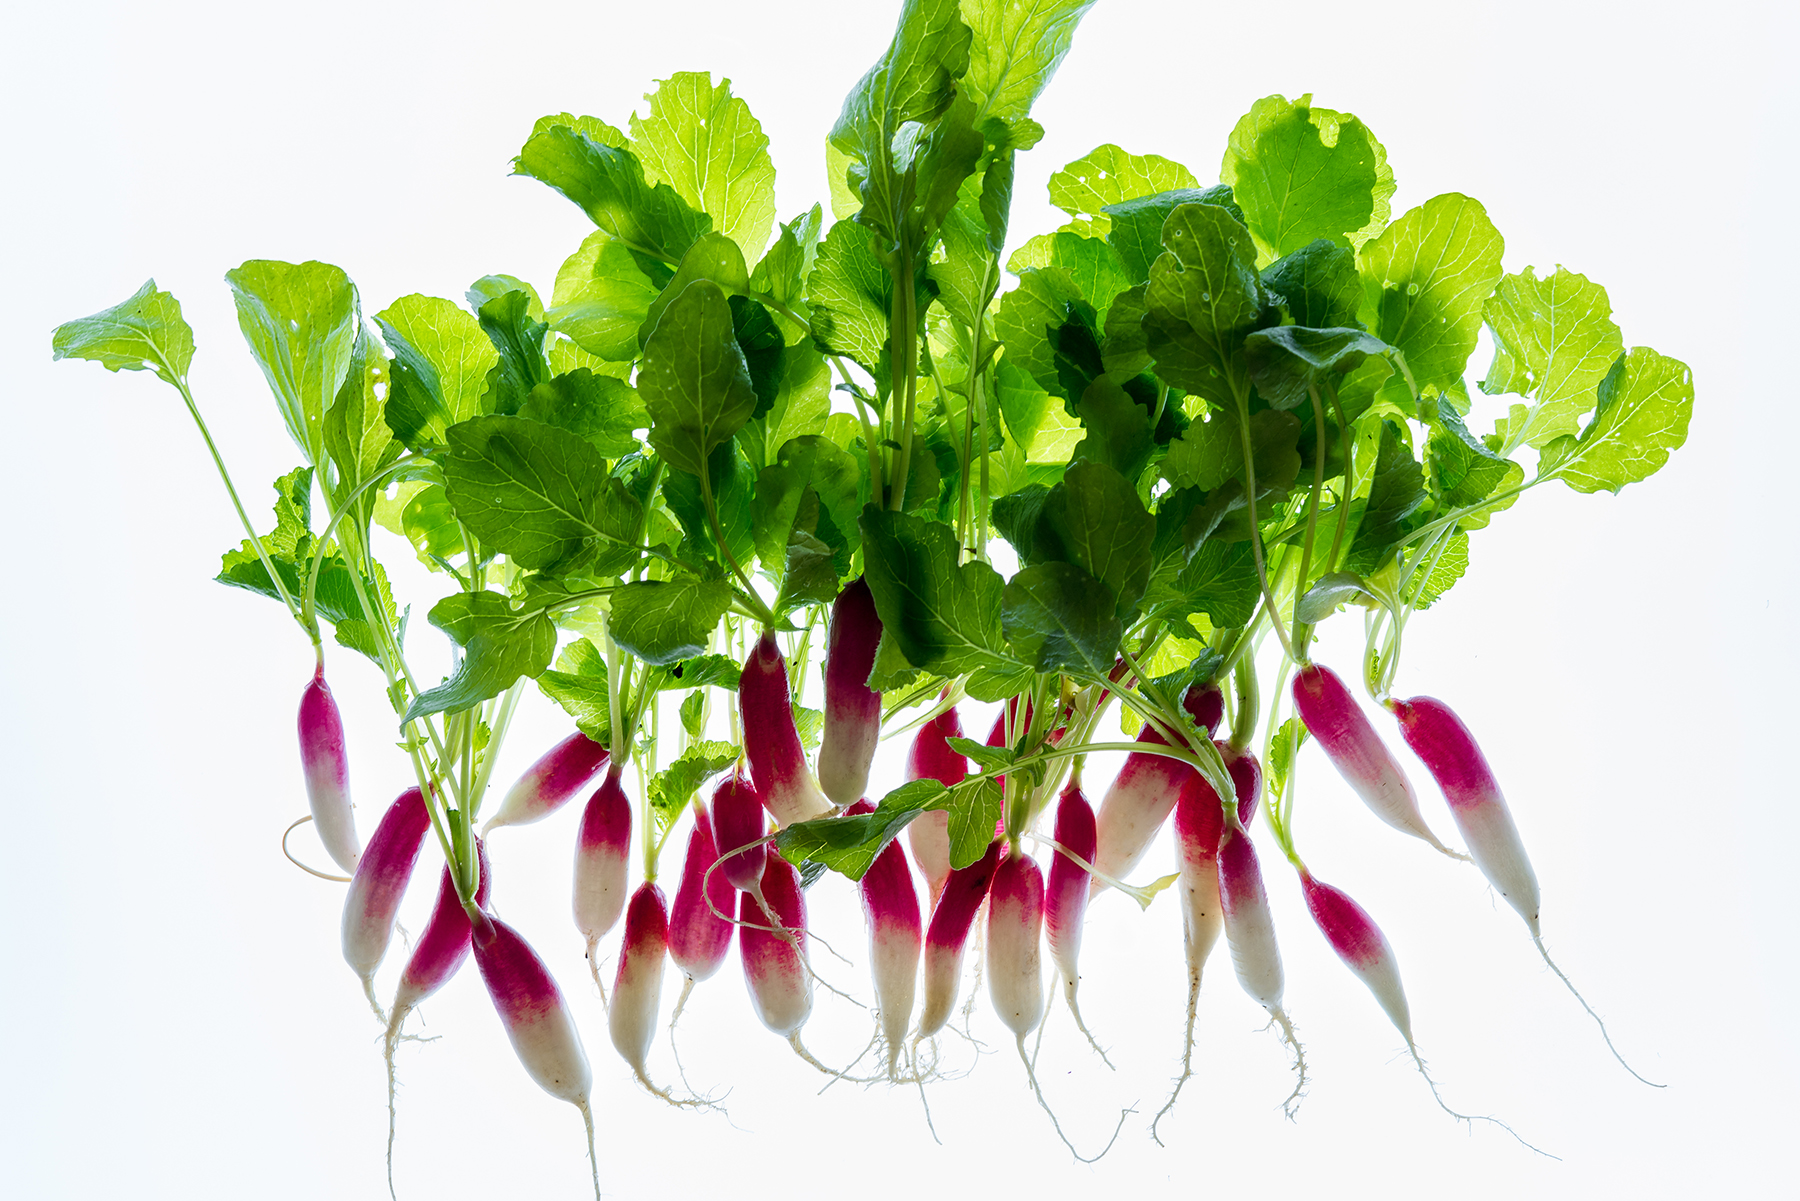 radishes-heirloom-bunch-white